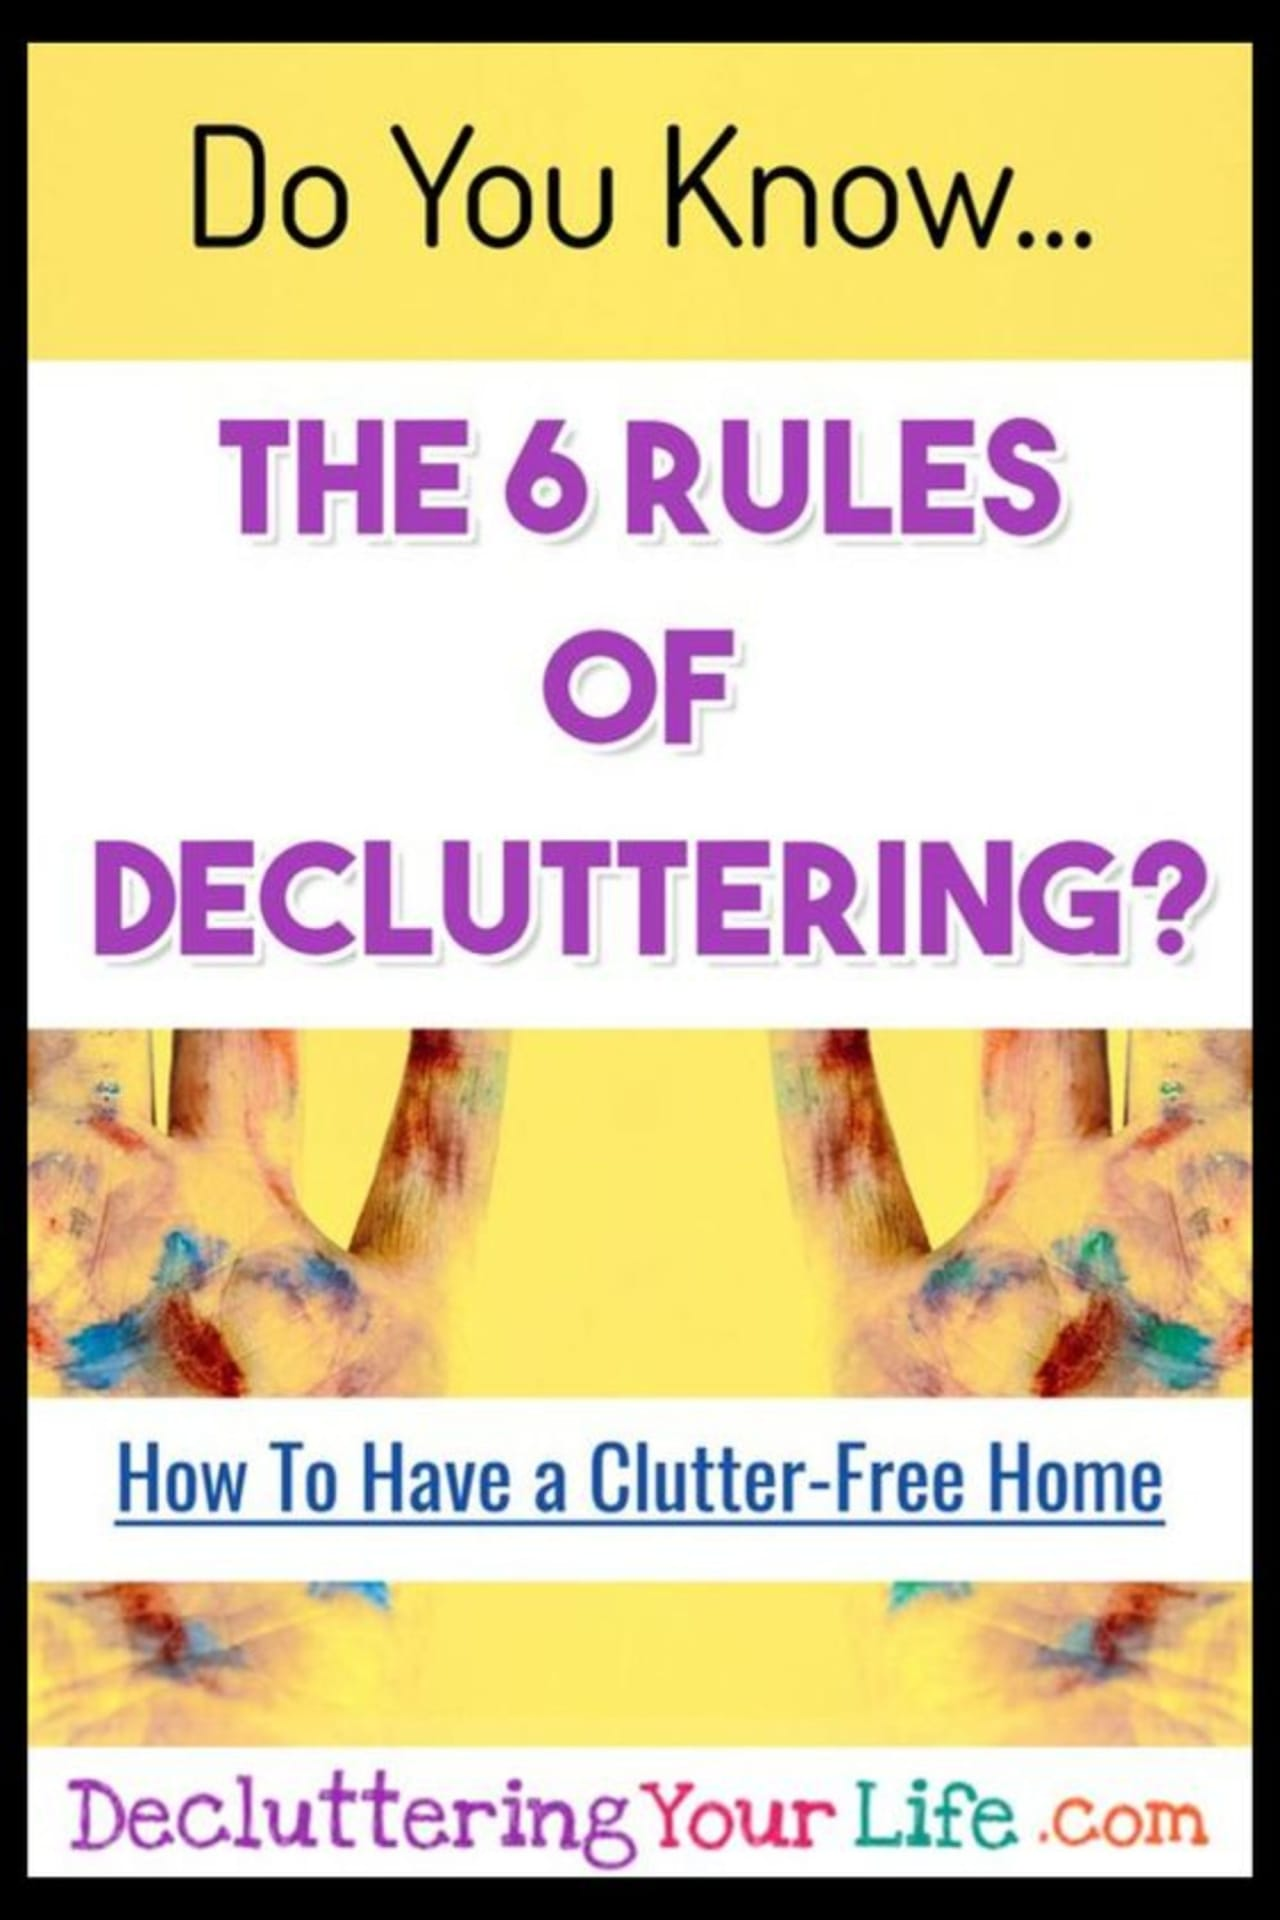 Decluttering ideas - how to declutter and organize when feeling overwhelmed - decluttering tips for packrats and hoarding help